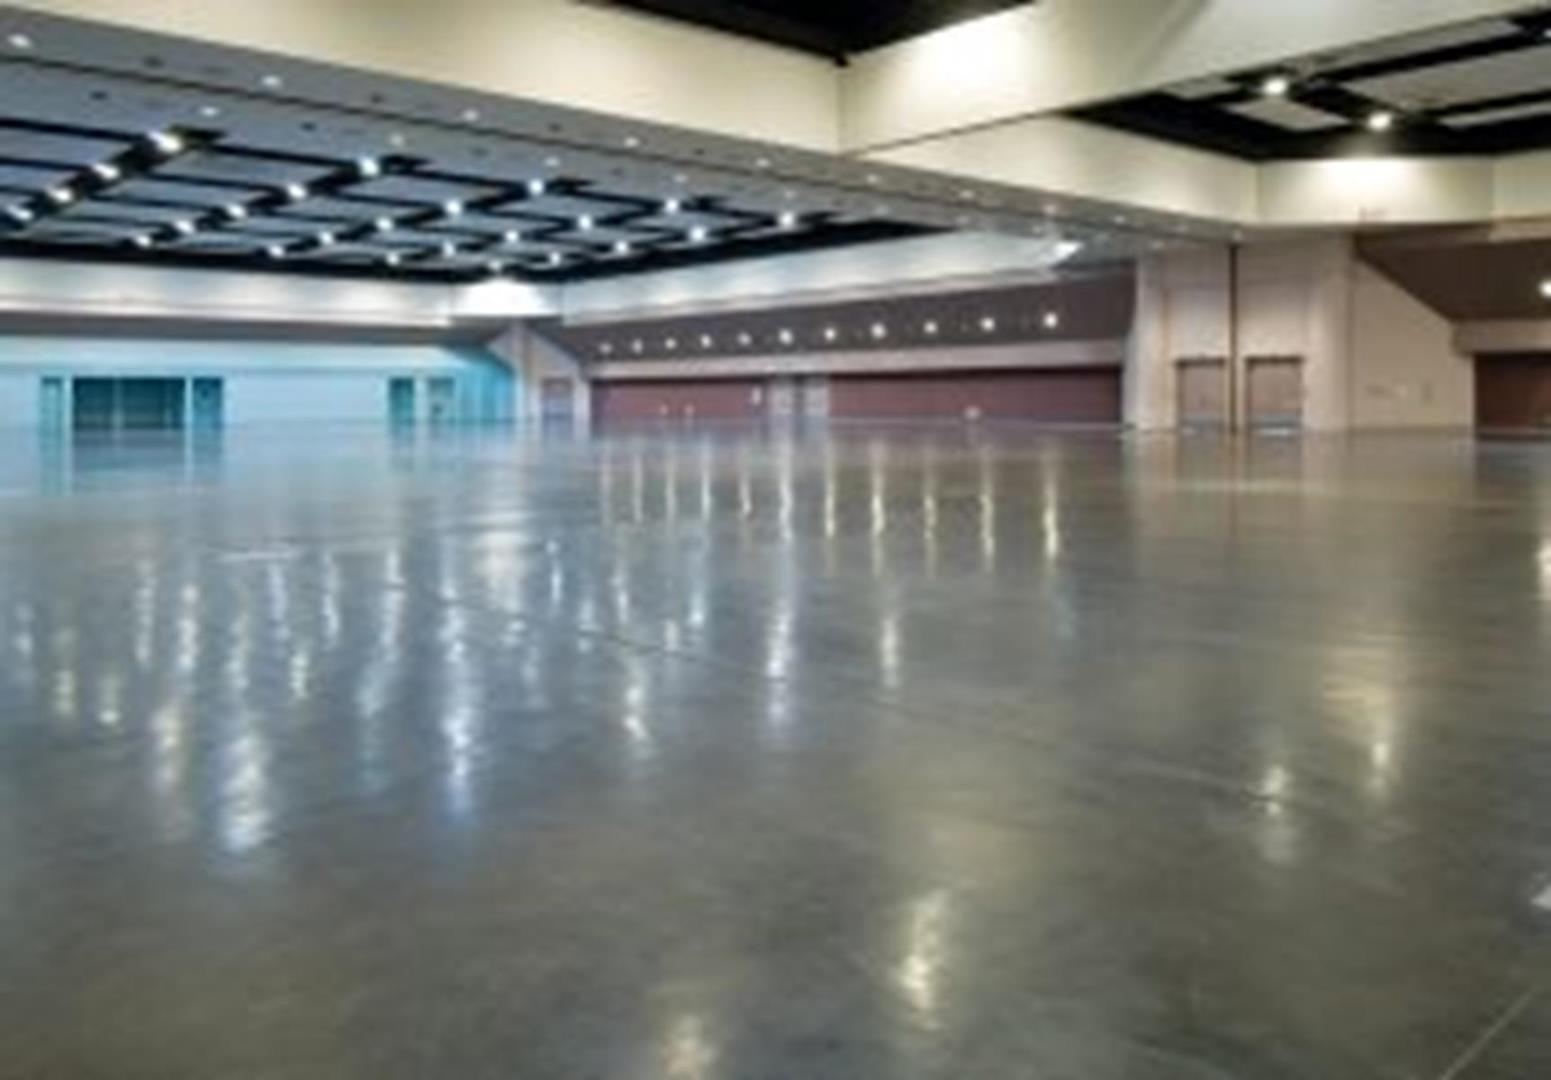 Copy of Convention Center Exhibit Hall